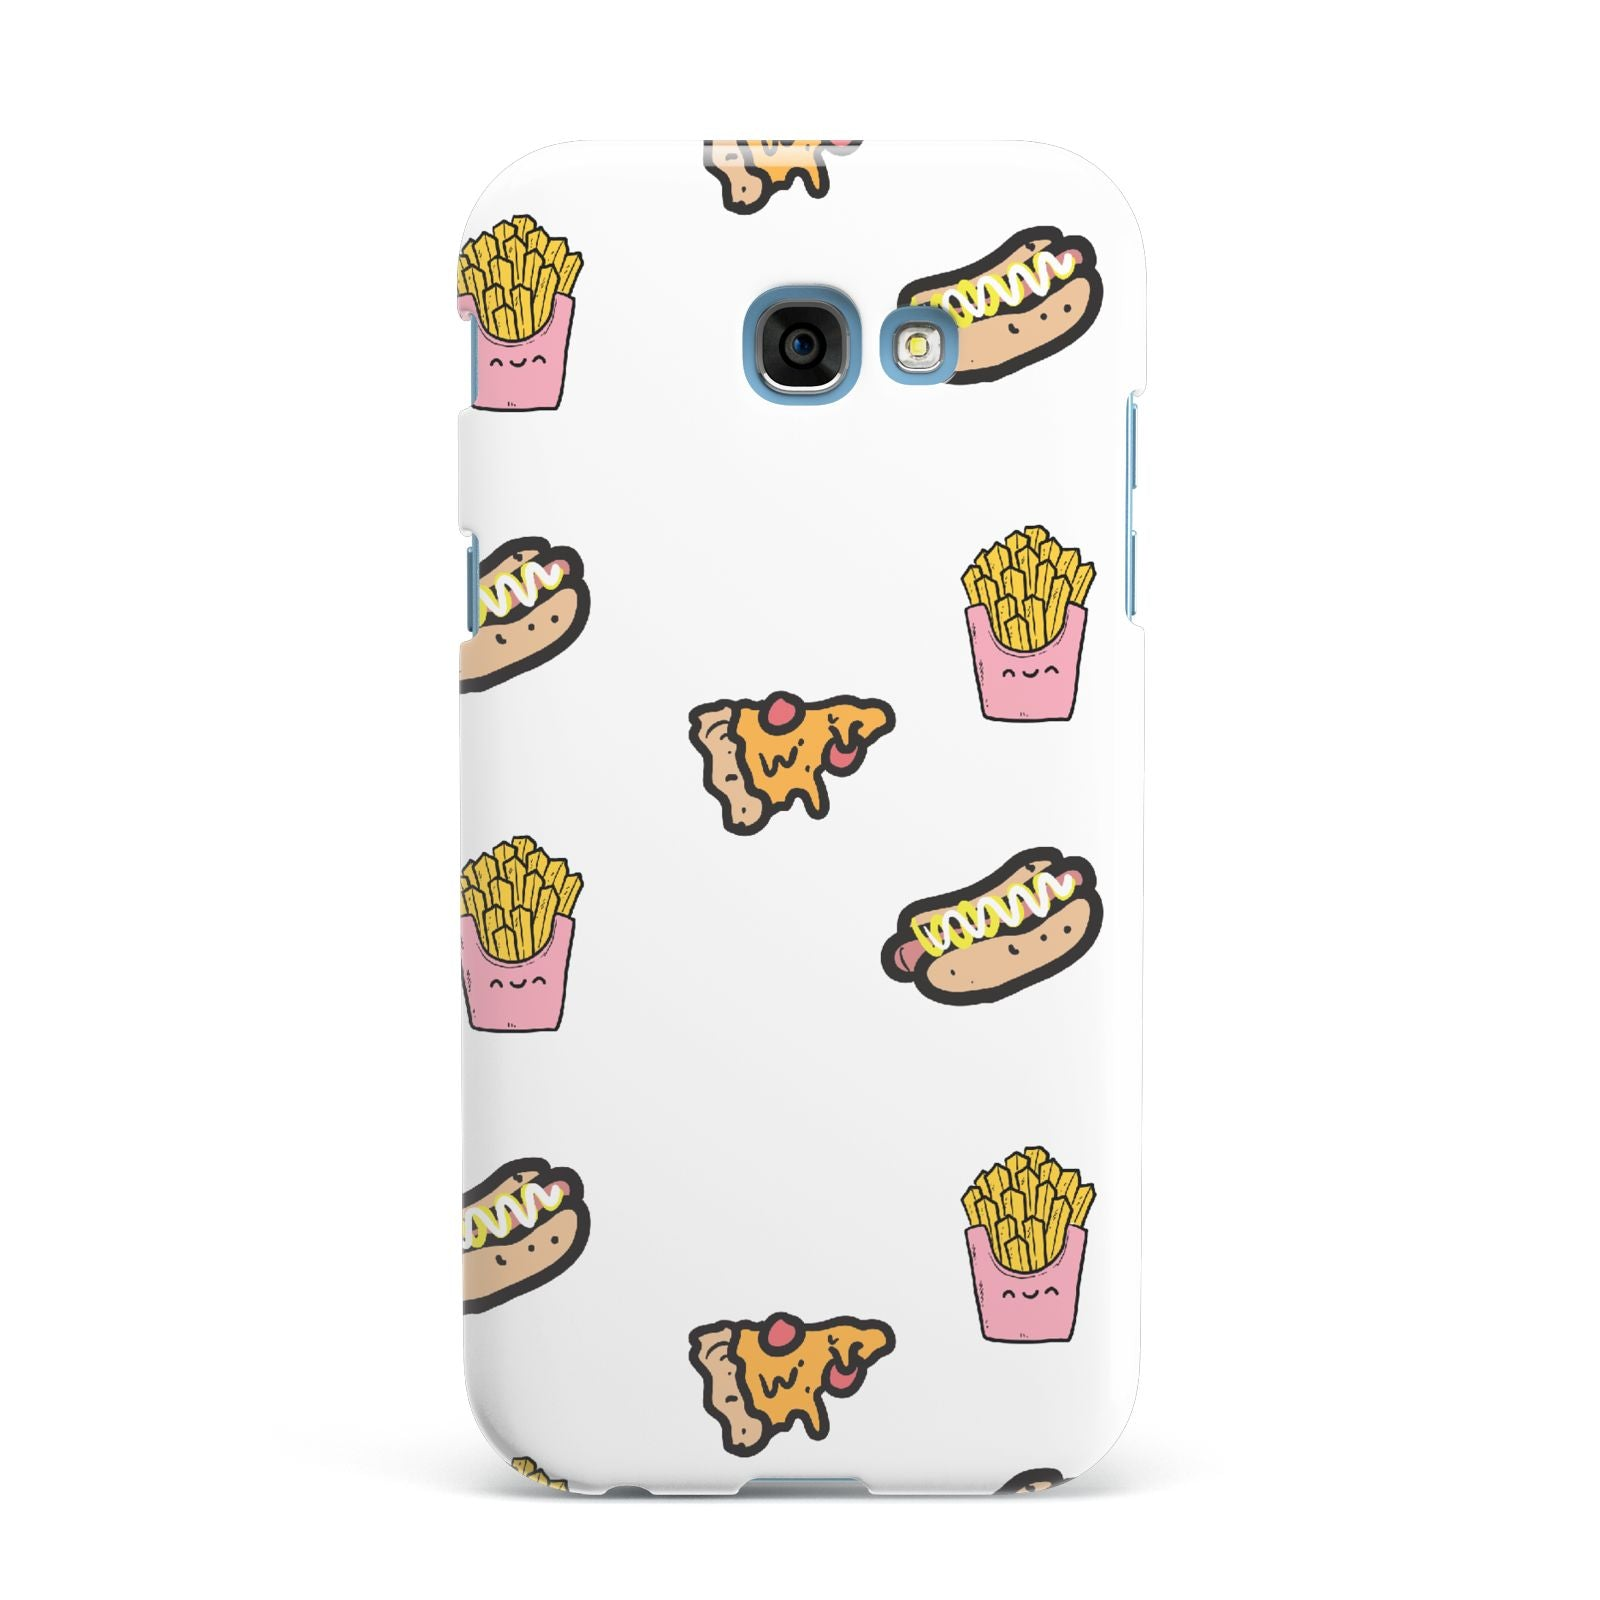 Fries Pizza Hot Dog Samsung Galaxy A7 2017 Case